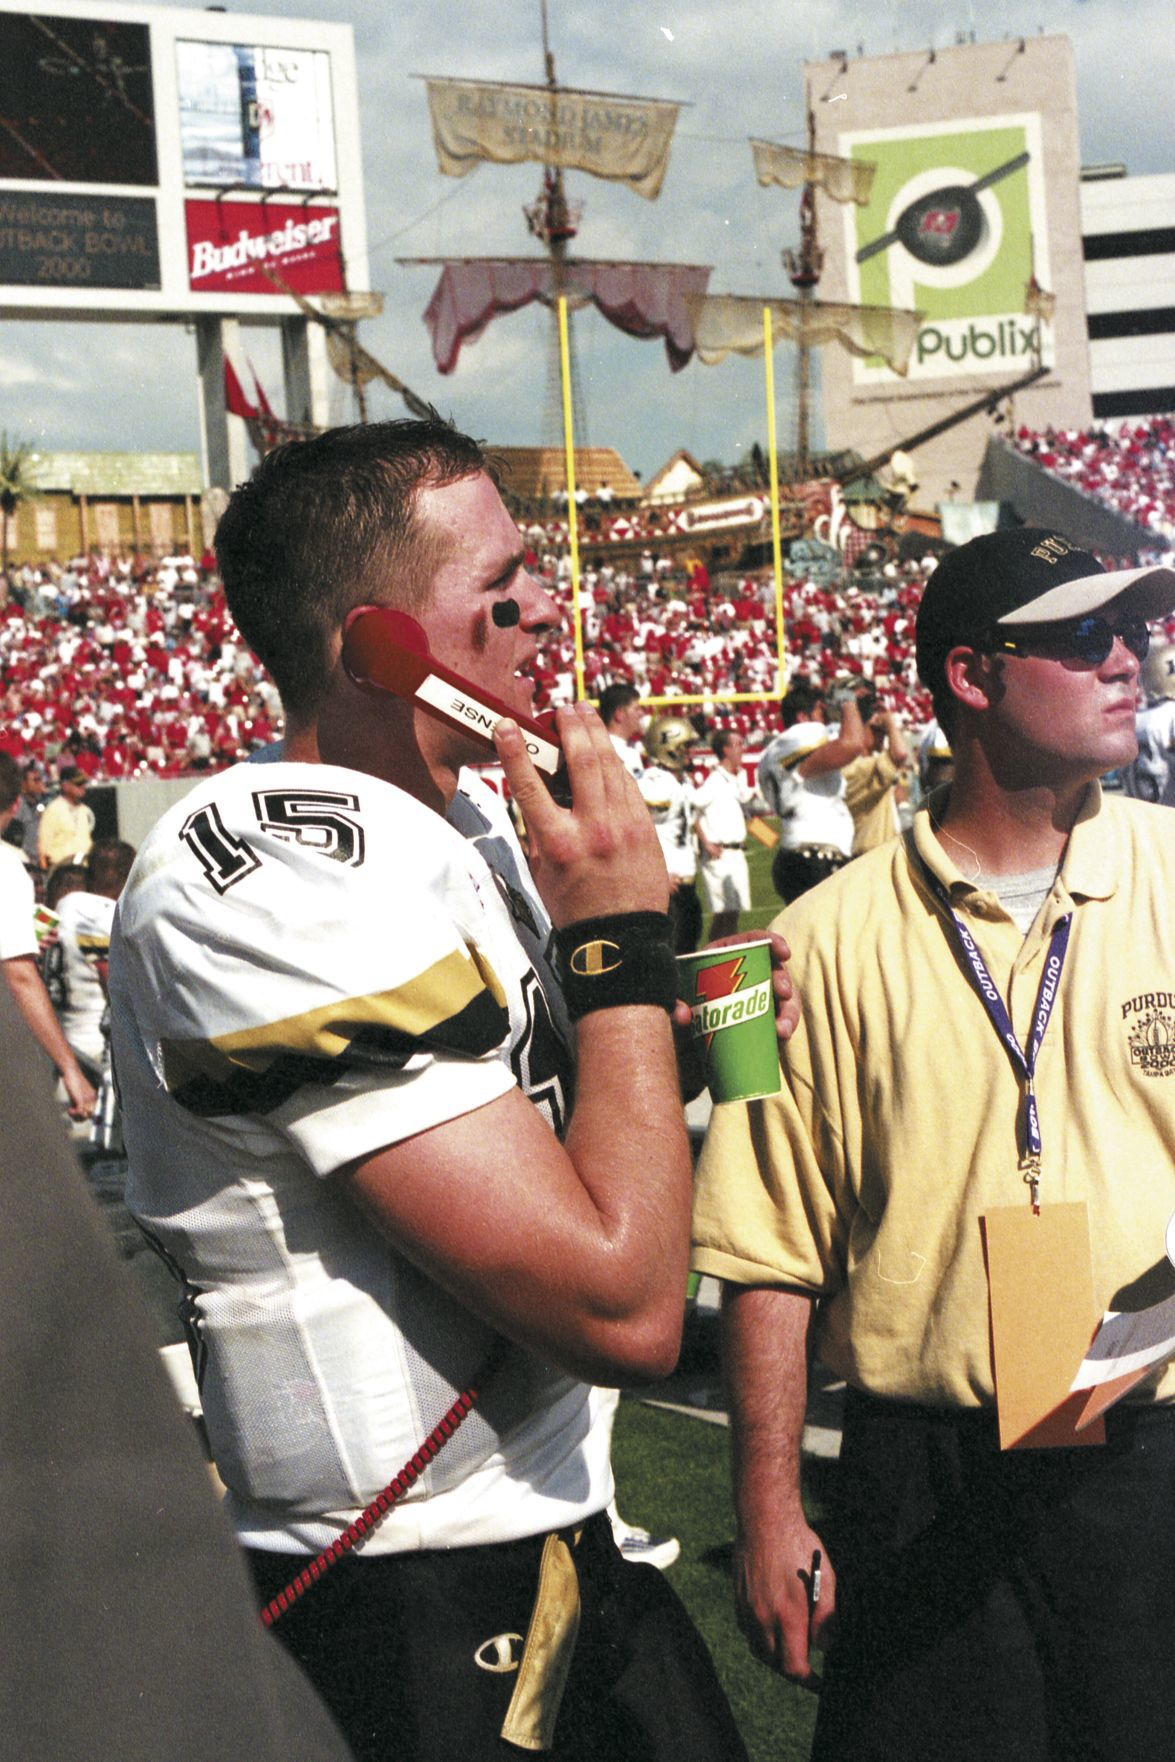 1/1/00 Outback Bowl, Drew Brees